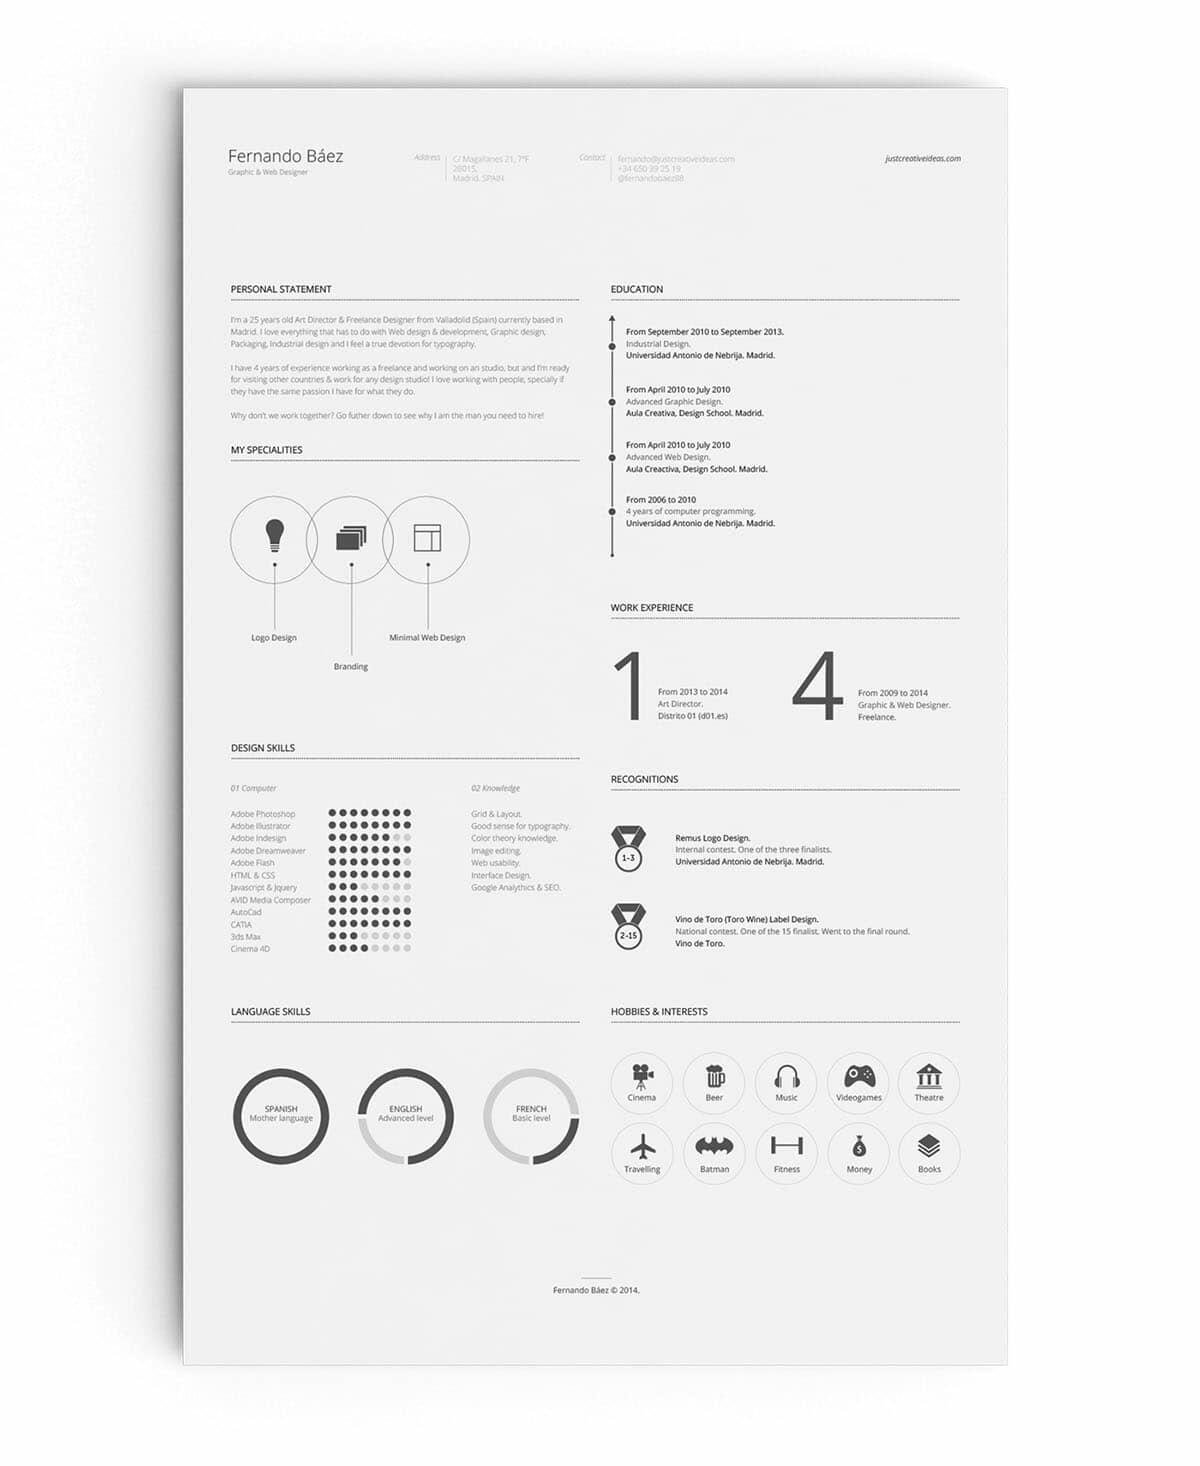 Free resume templates 17 downloadable resume templates to use best free resume template with lots of white space thecheapjerseys Images